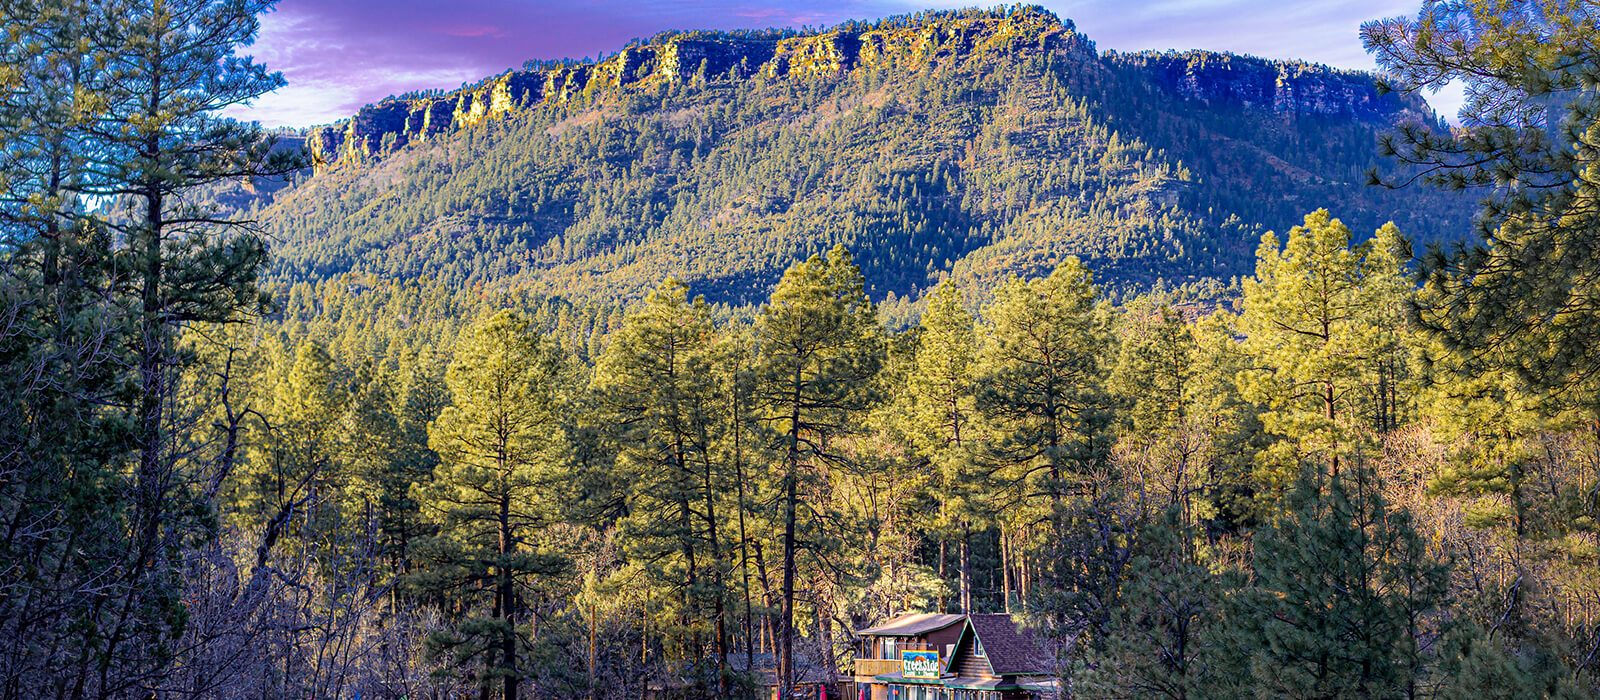 What Special Do You Get at Mountain Cabin in Payson?